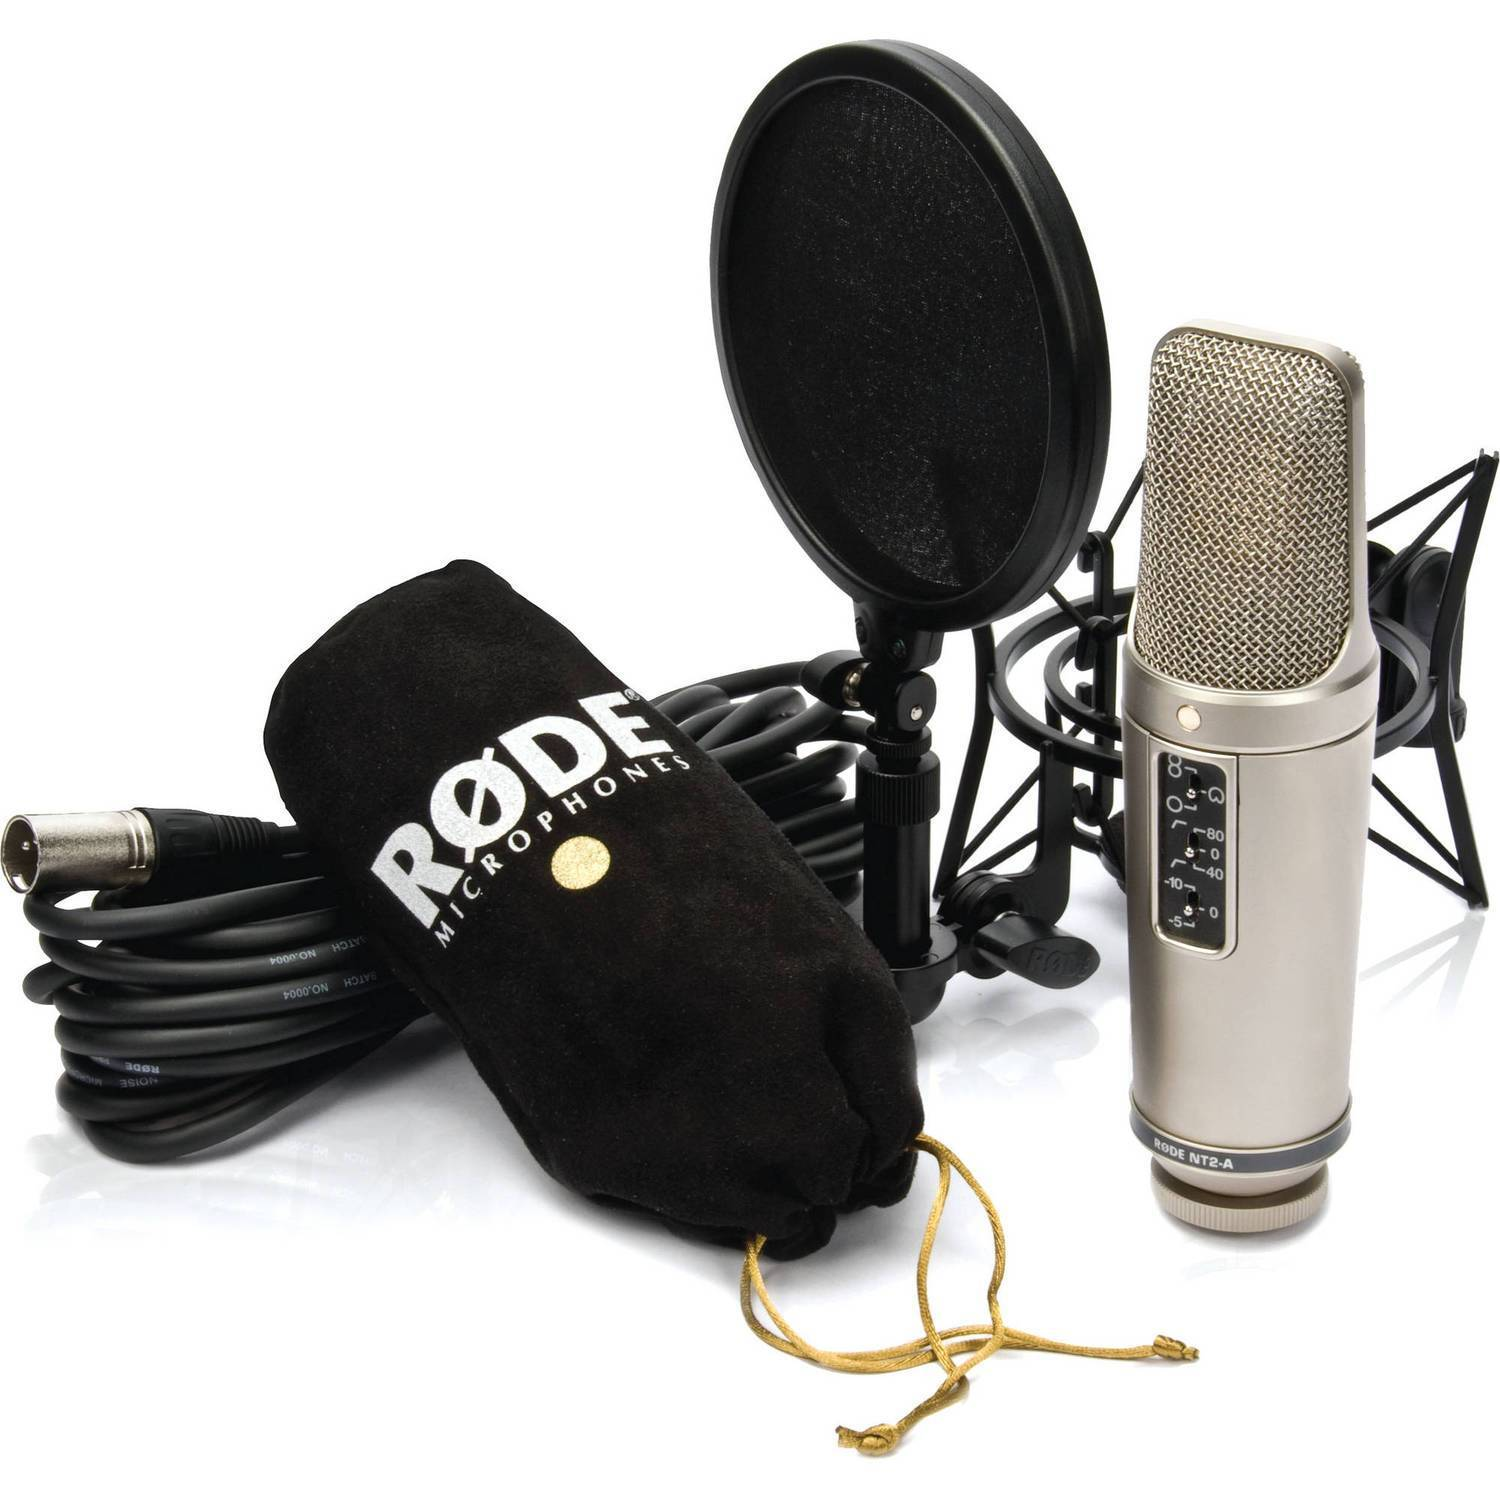 Rode NT2A Large Diaphragm Condenser Microphone Studio Solution System